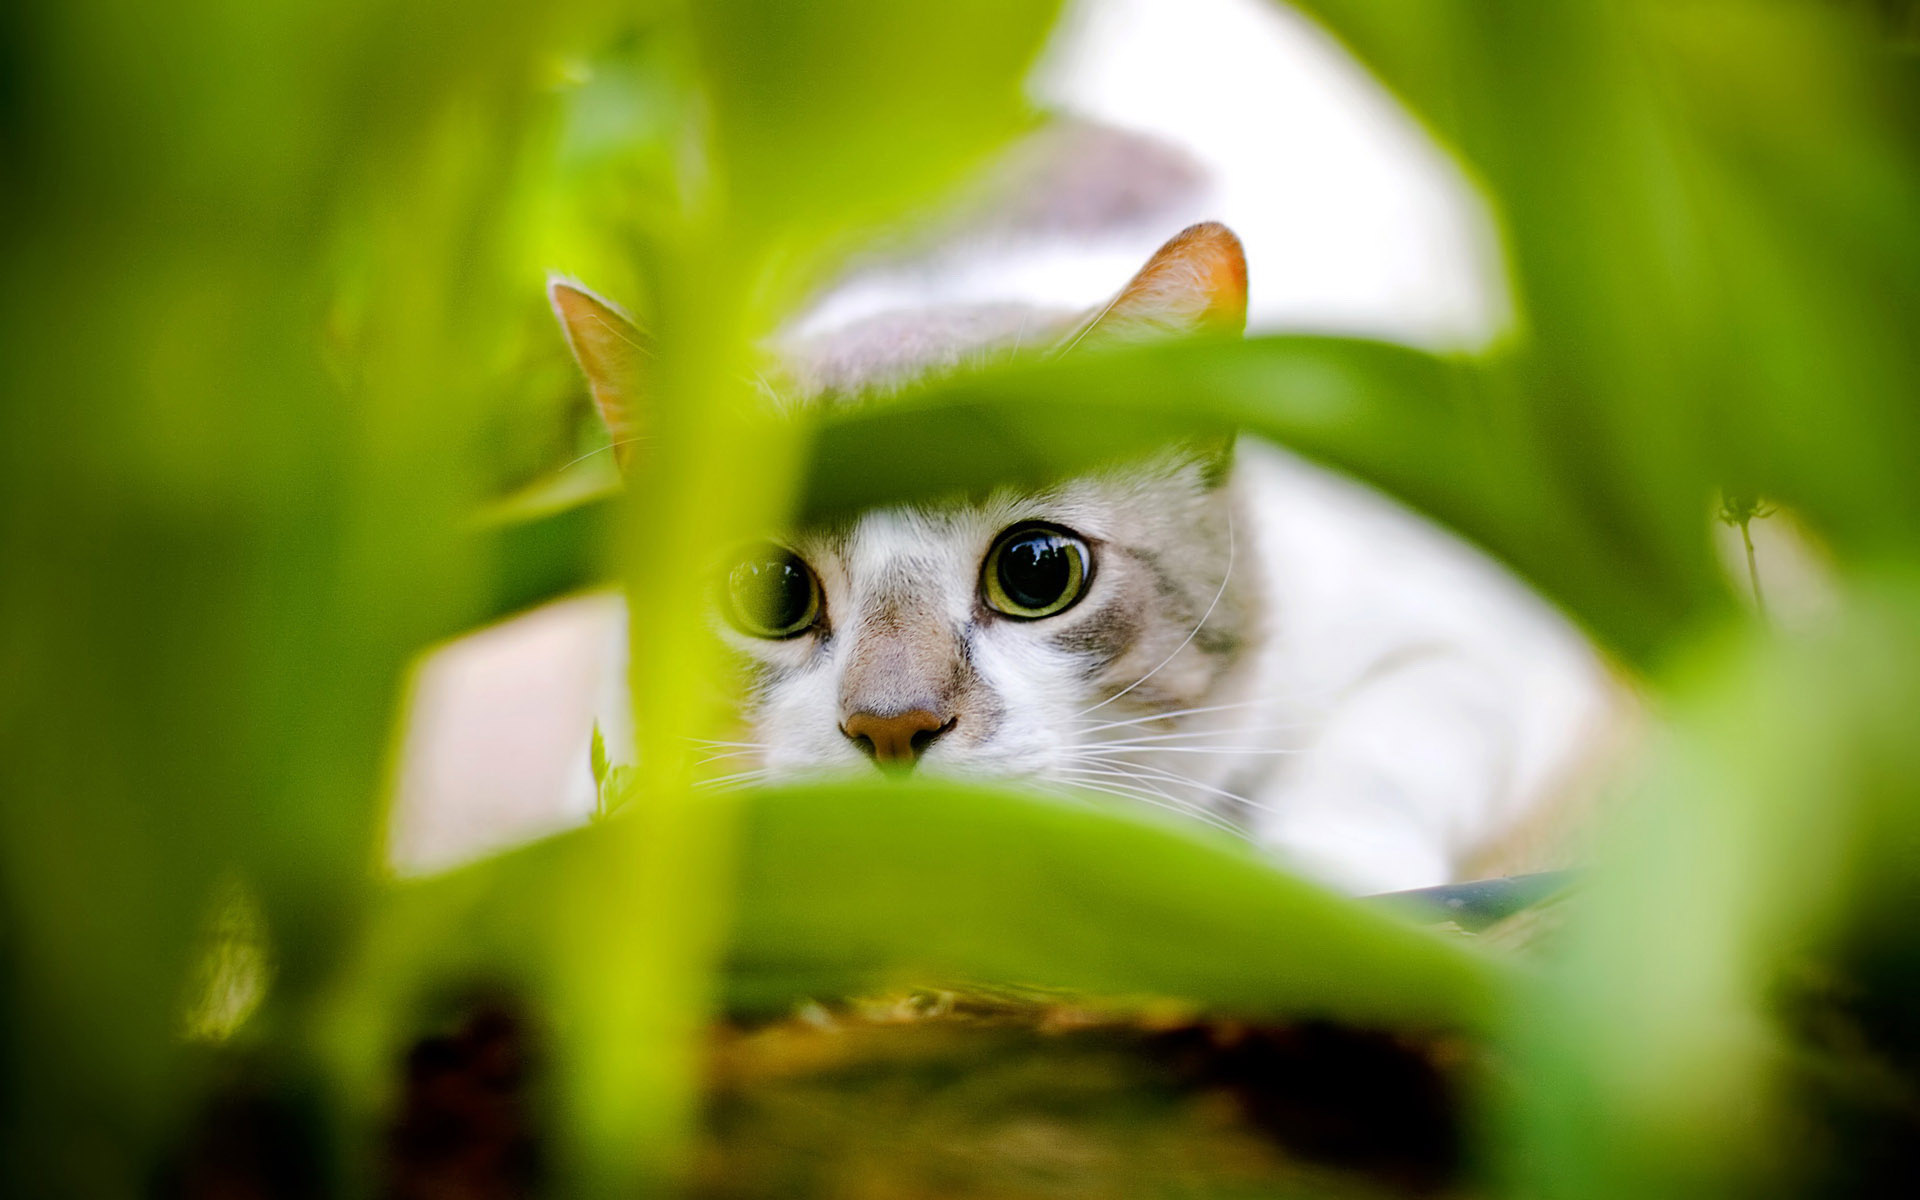 White big eyes cute cat wallpaper Animal desktop background Animal 1920x1200